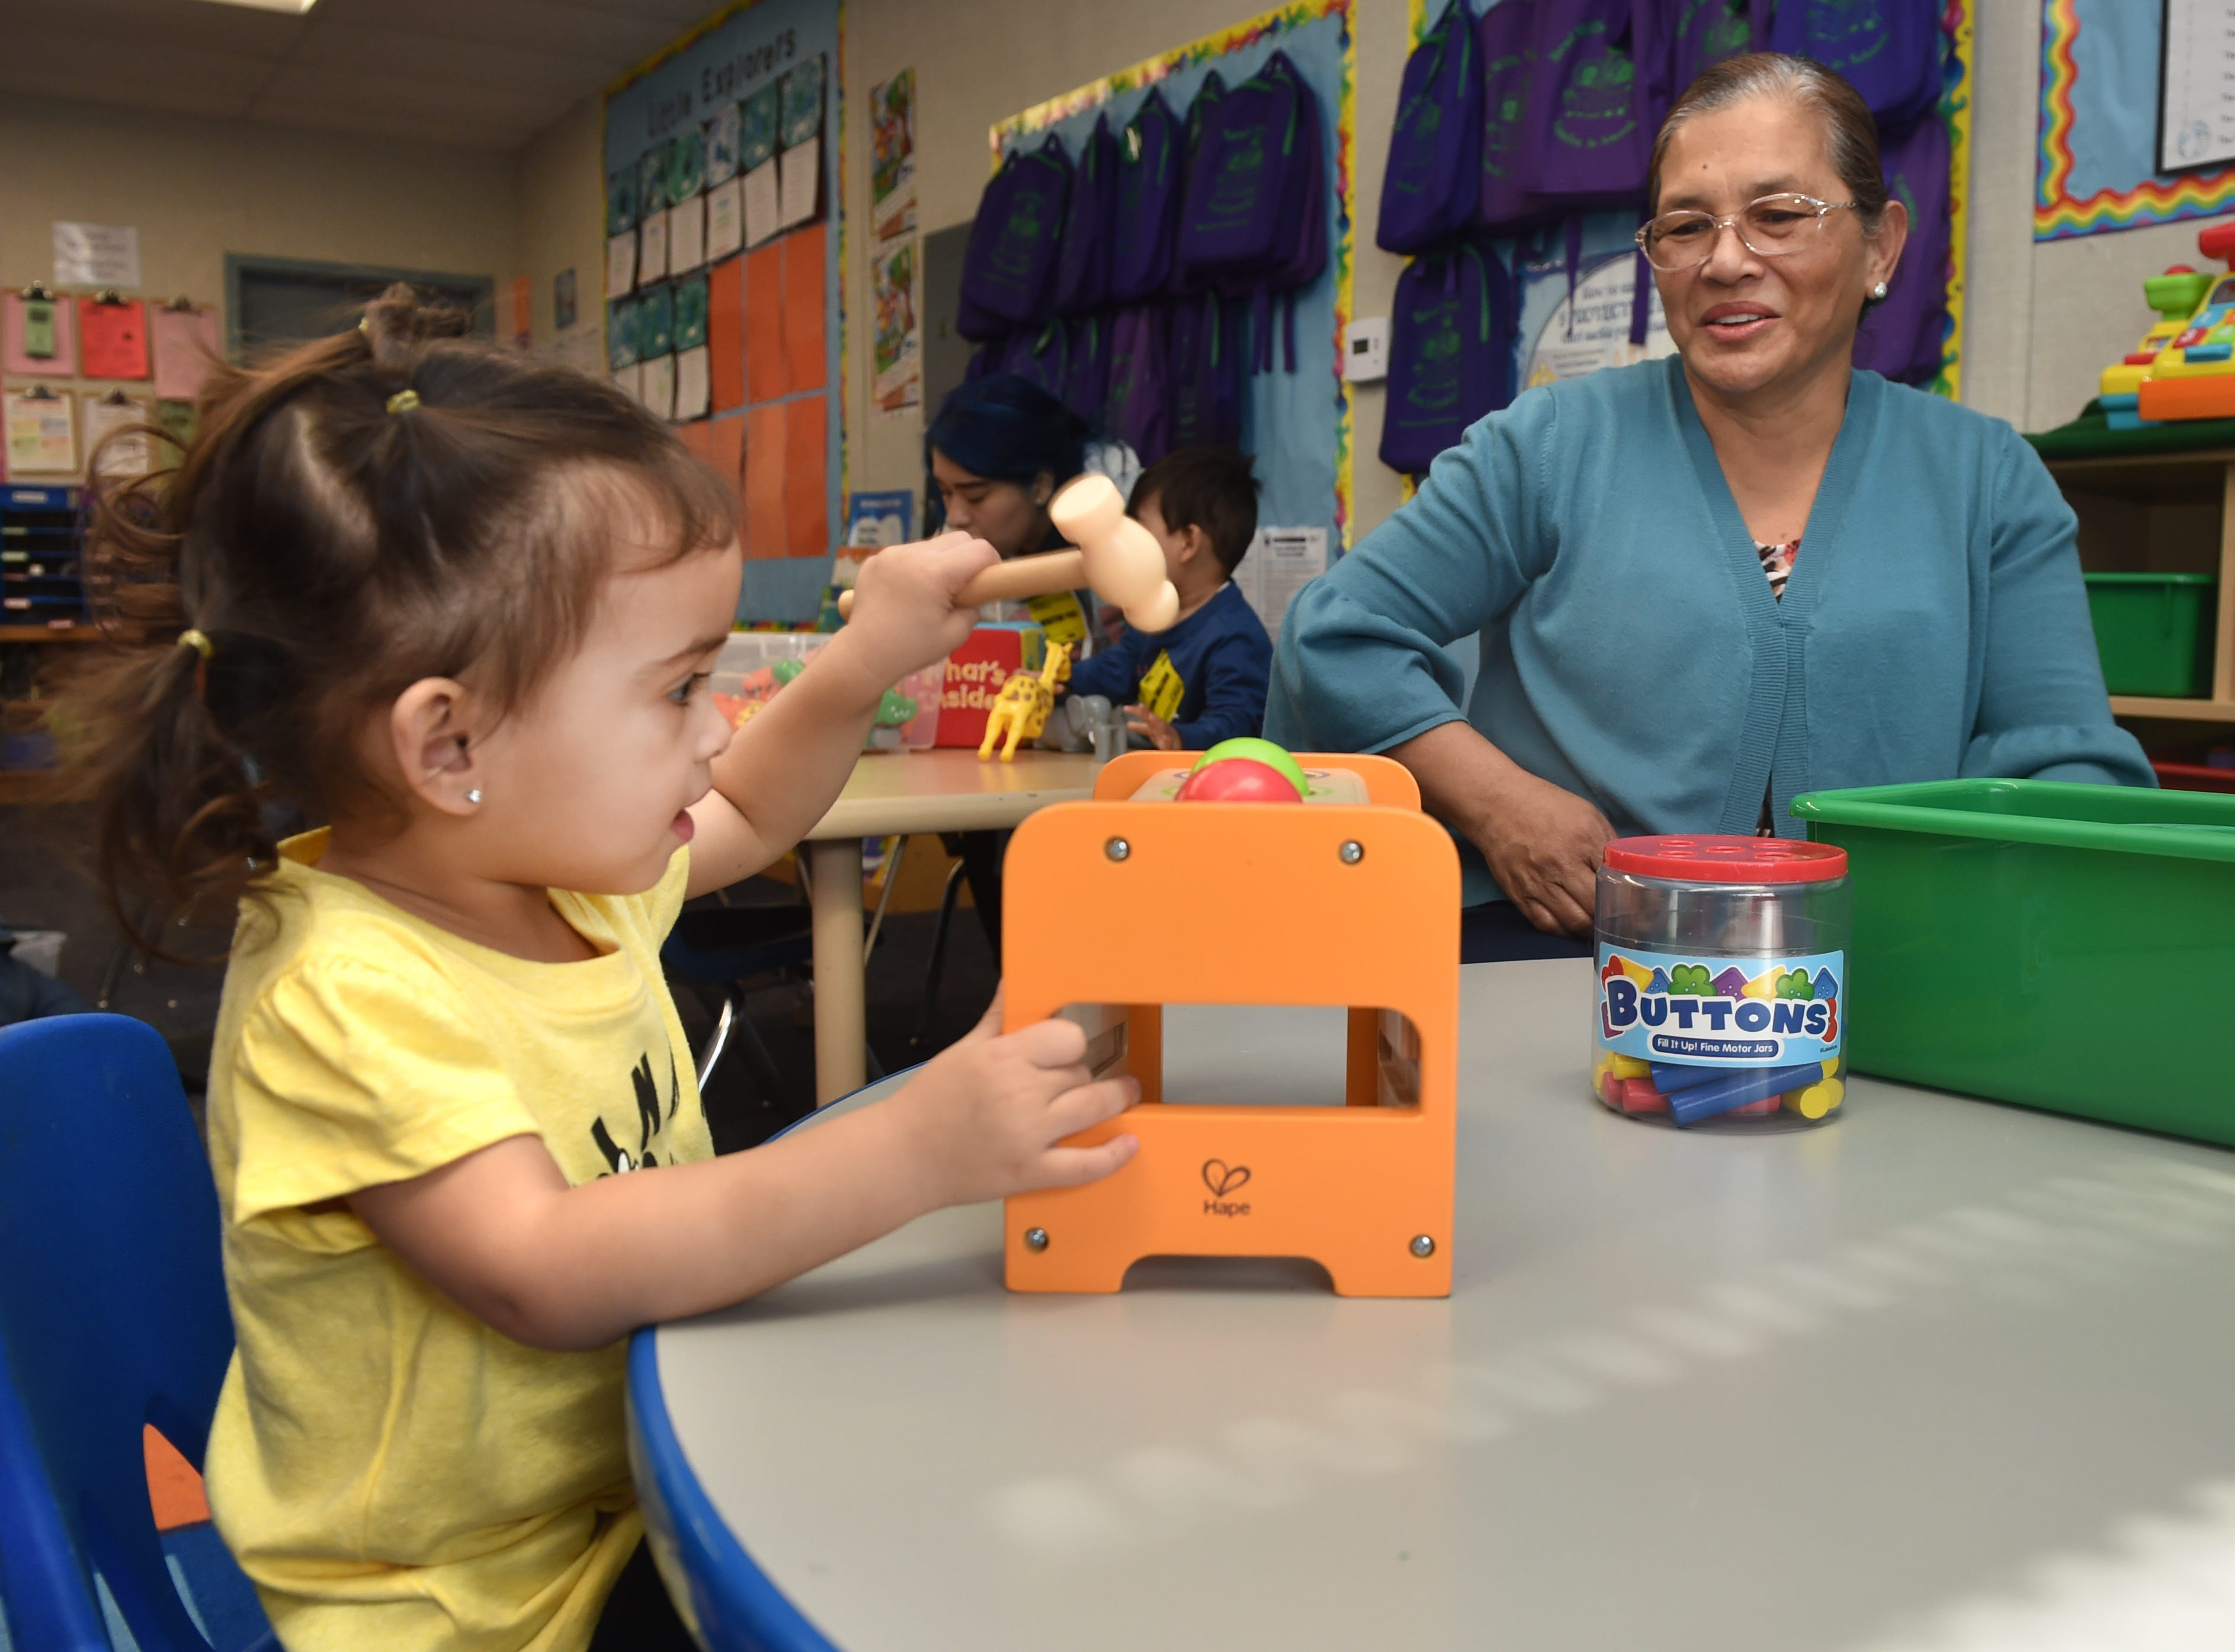 Roxanne Barbittin, age 2, learns her colors while playing with her grandmother Lorena Jandoc during a First 5 Neighborhoods for Learning class at Hathaway Elementary School in Oxnard.